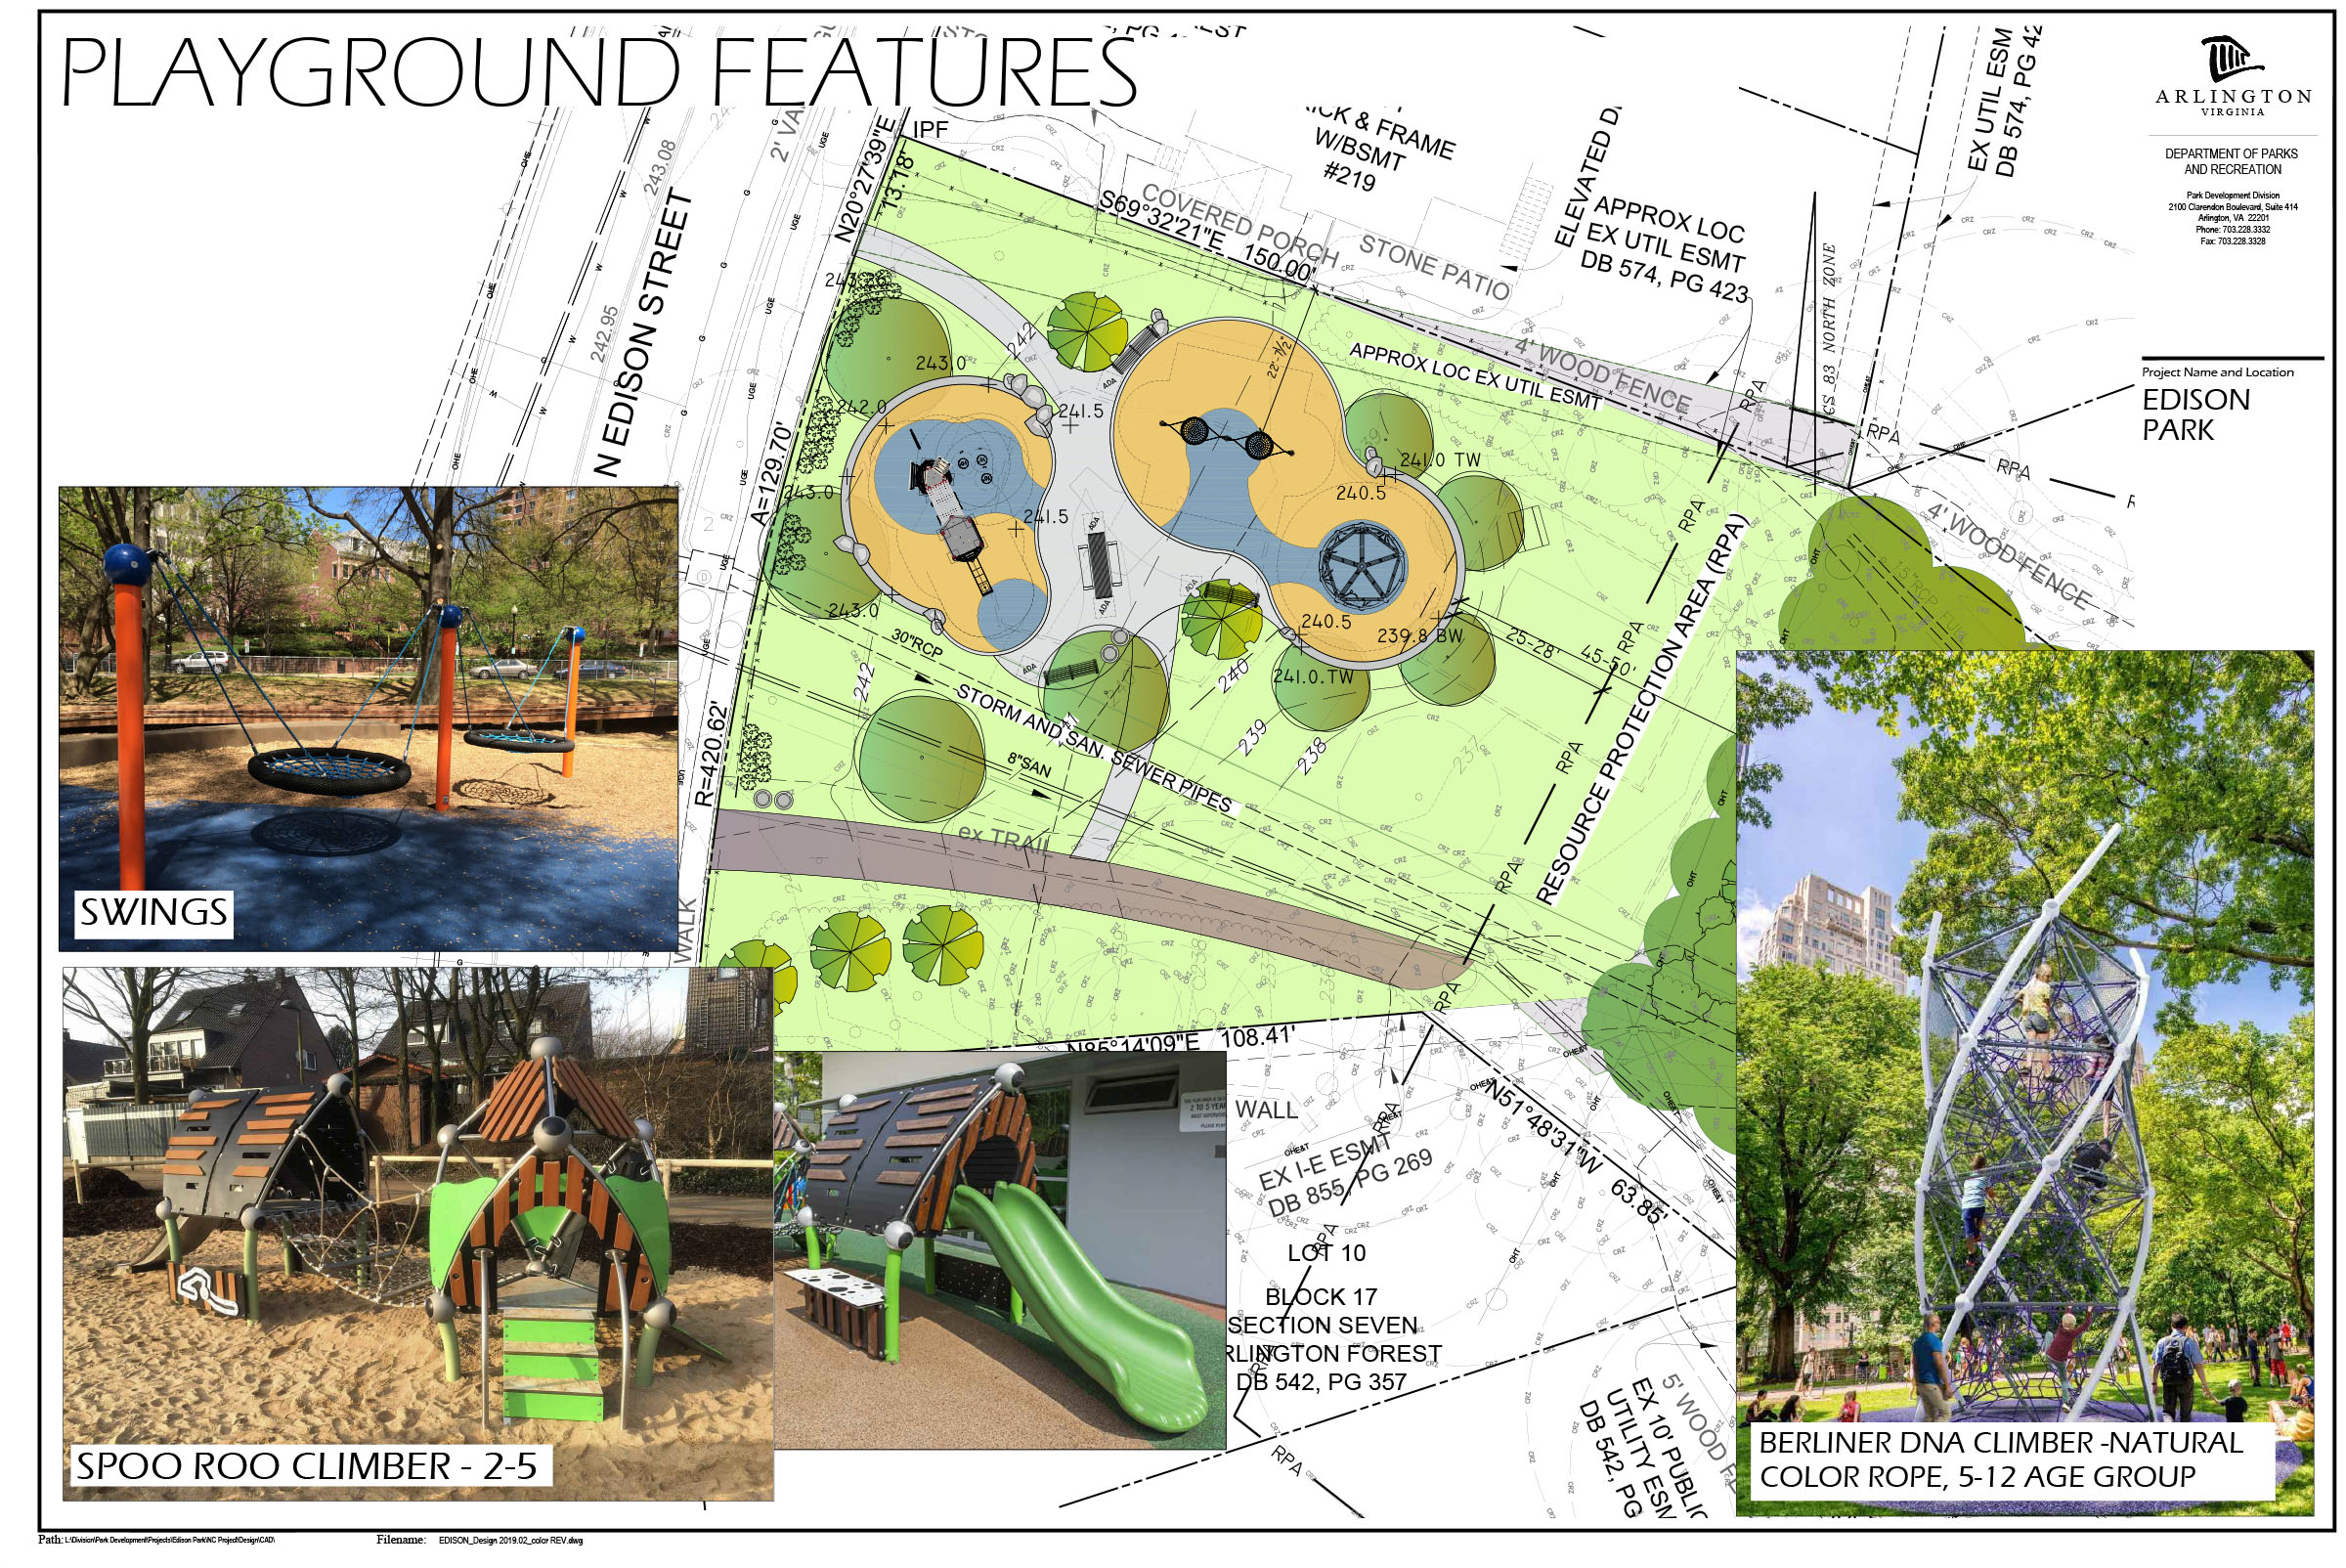 Here's an image of the play equipment in the new layout.